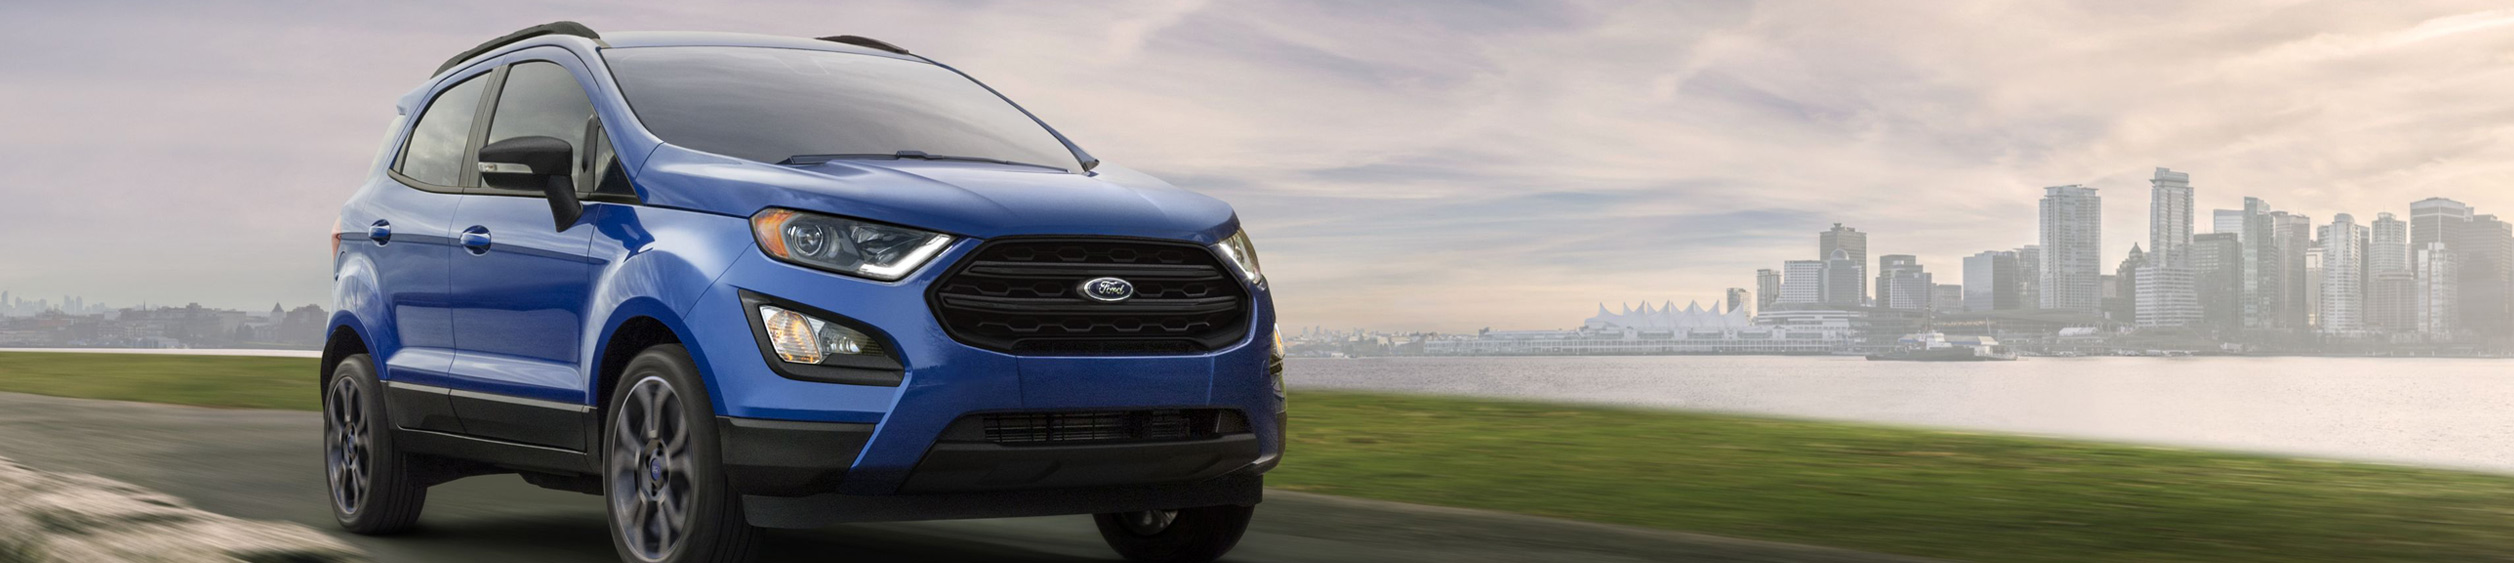 Ford certified pre-owned vehicles